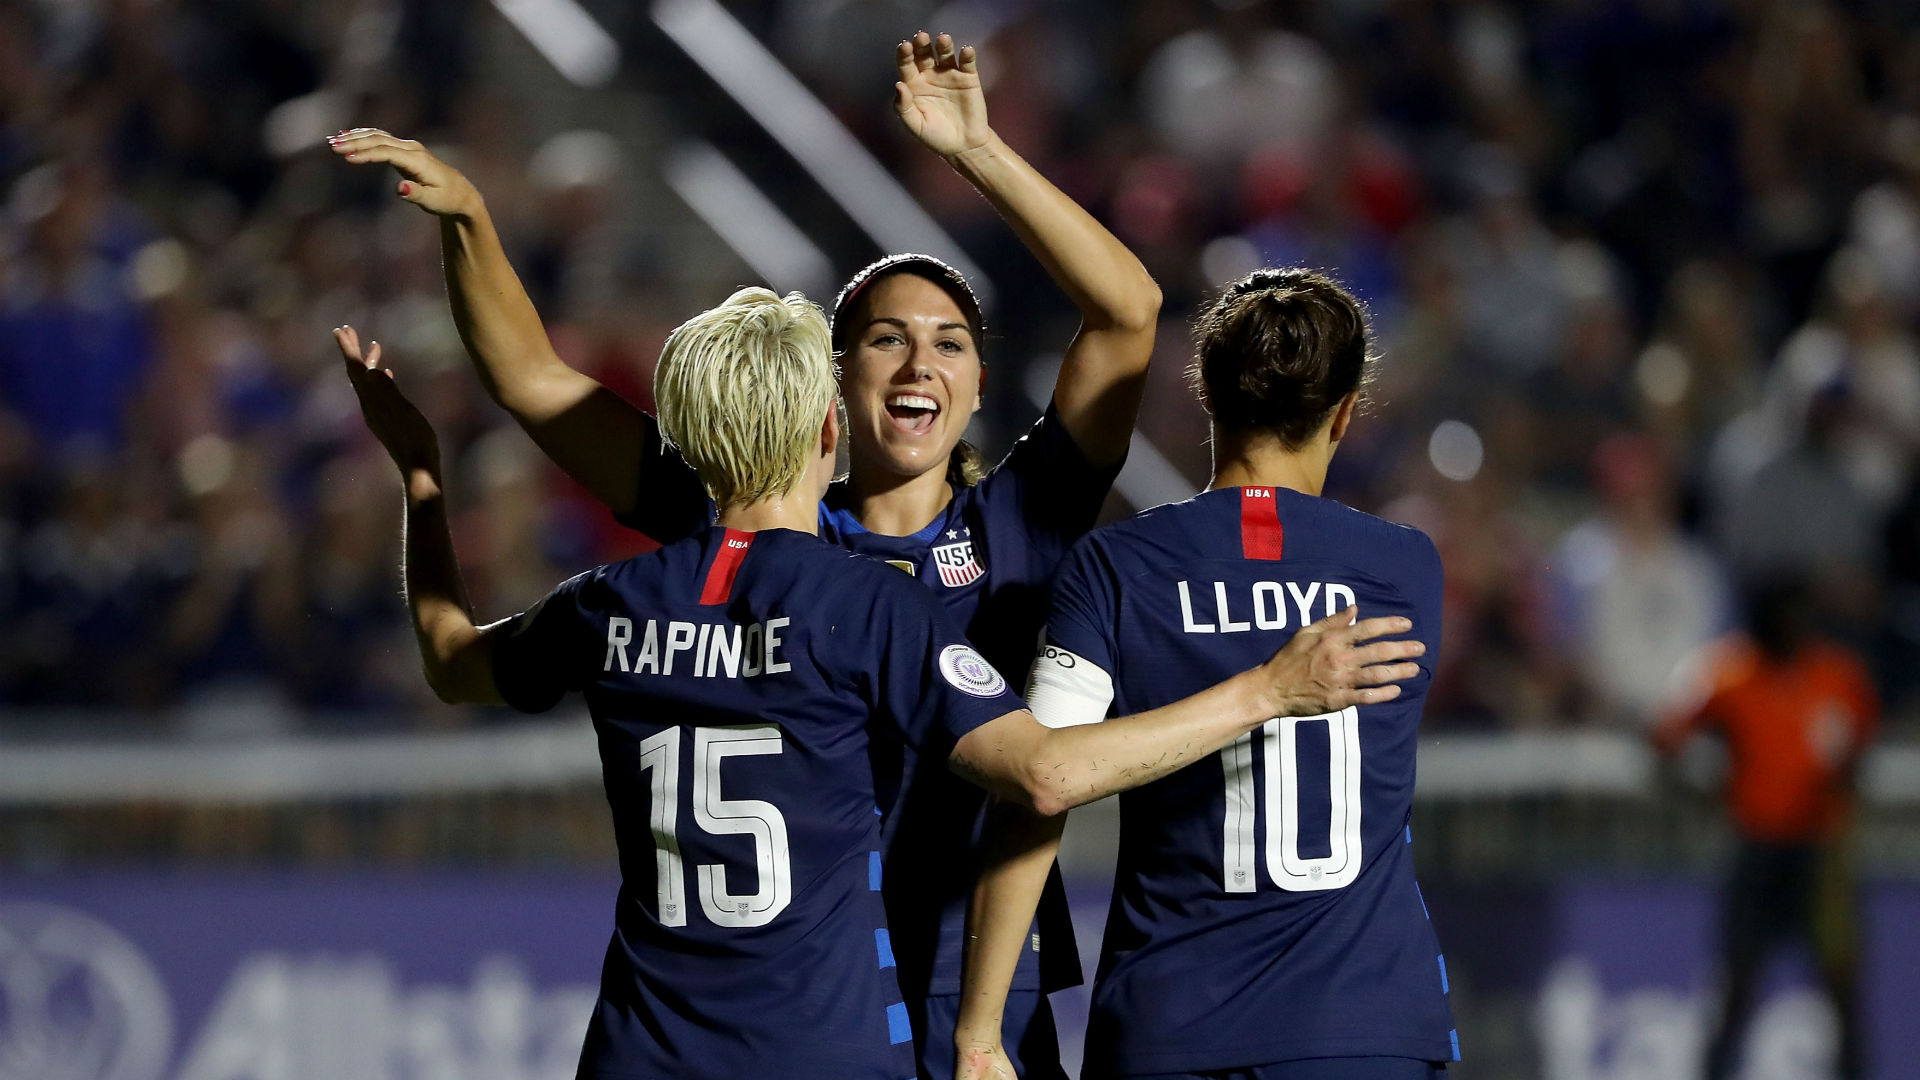 USWNT continues dominant play at World Cup qualifying with 5-0 victory over Panama